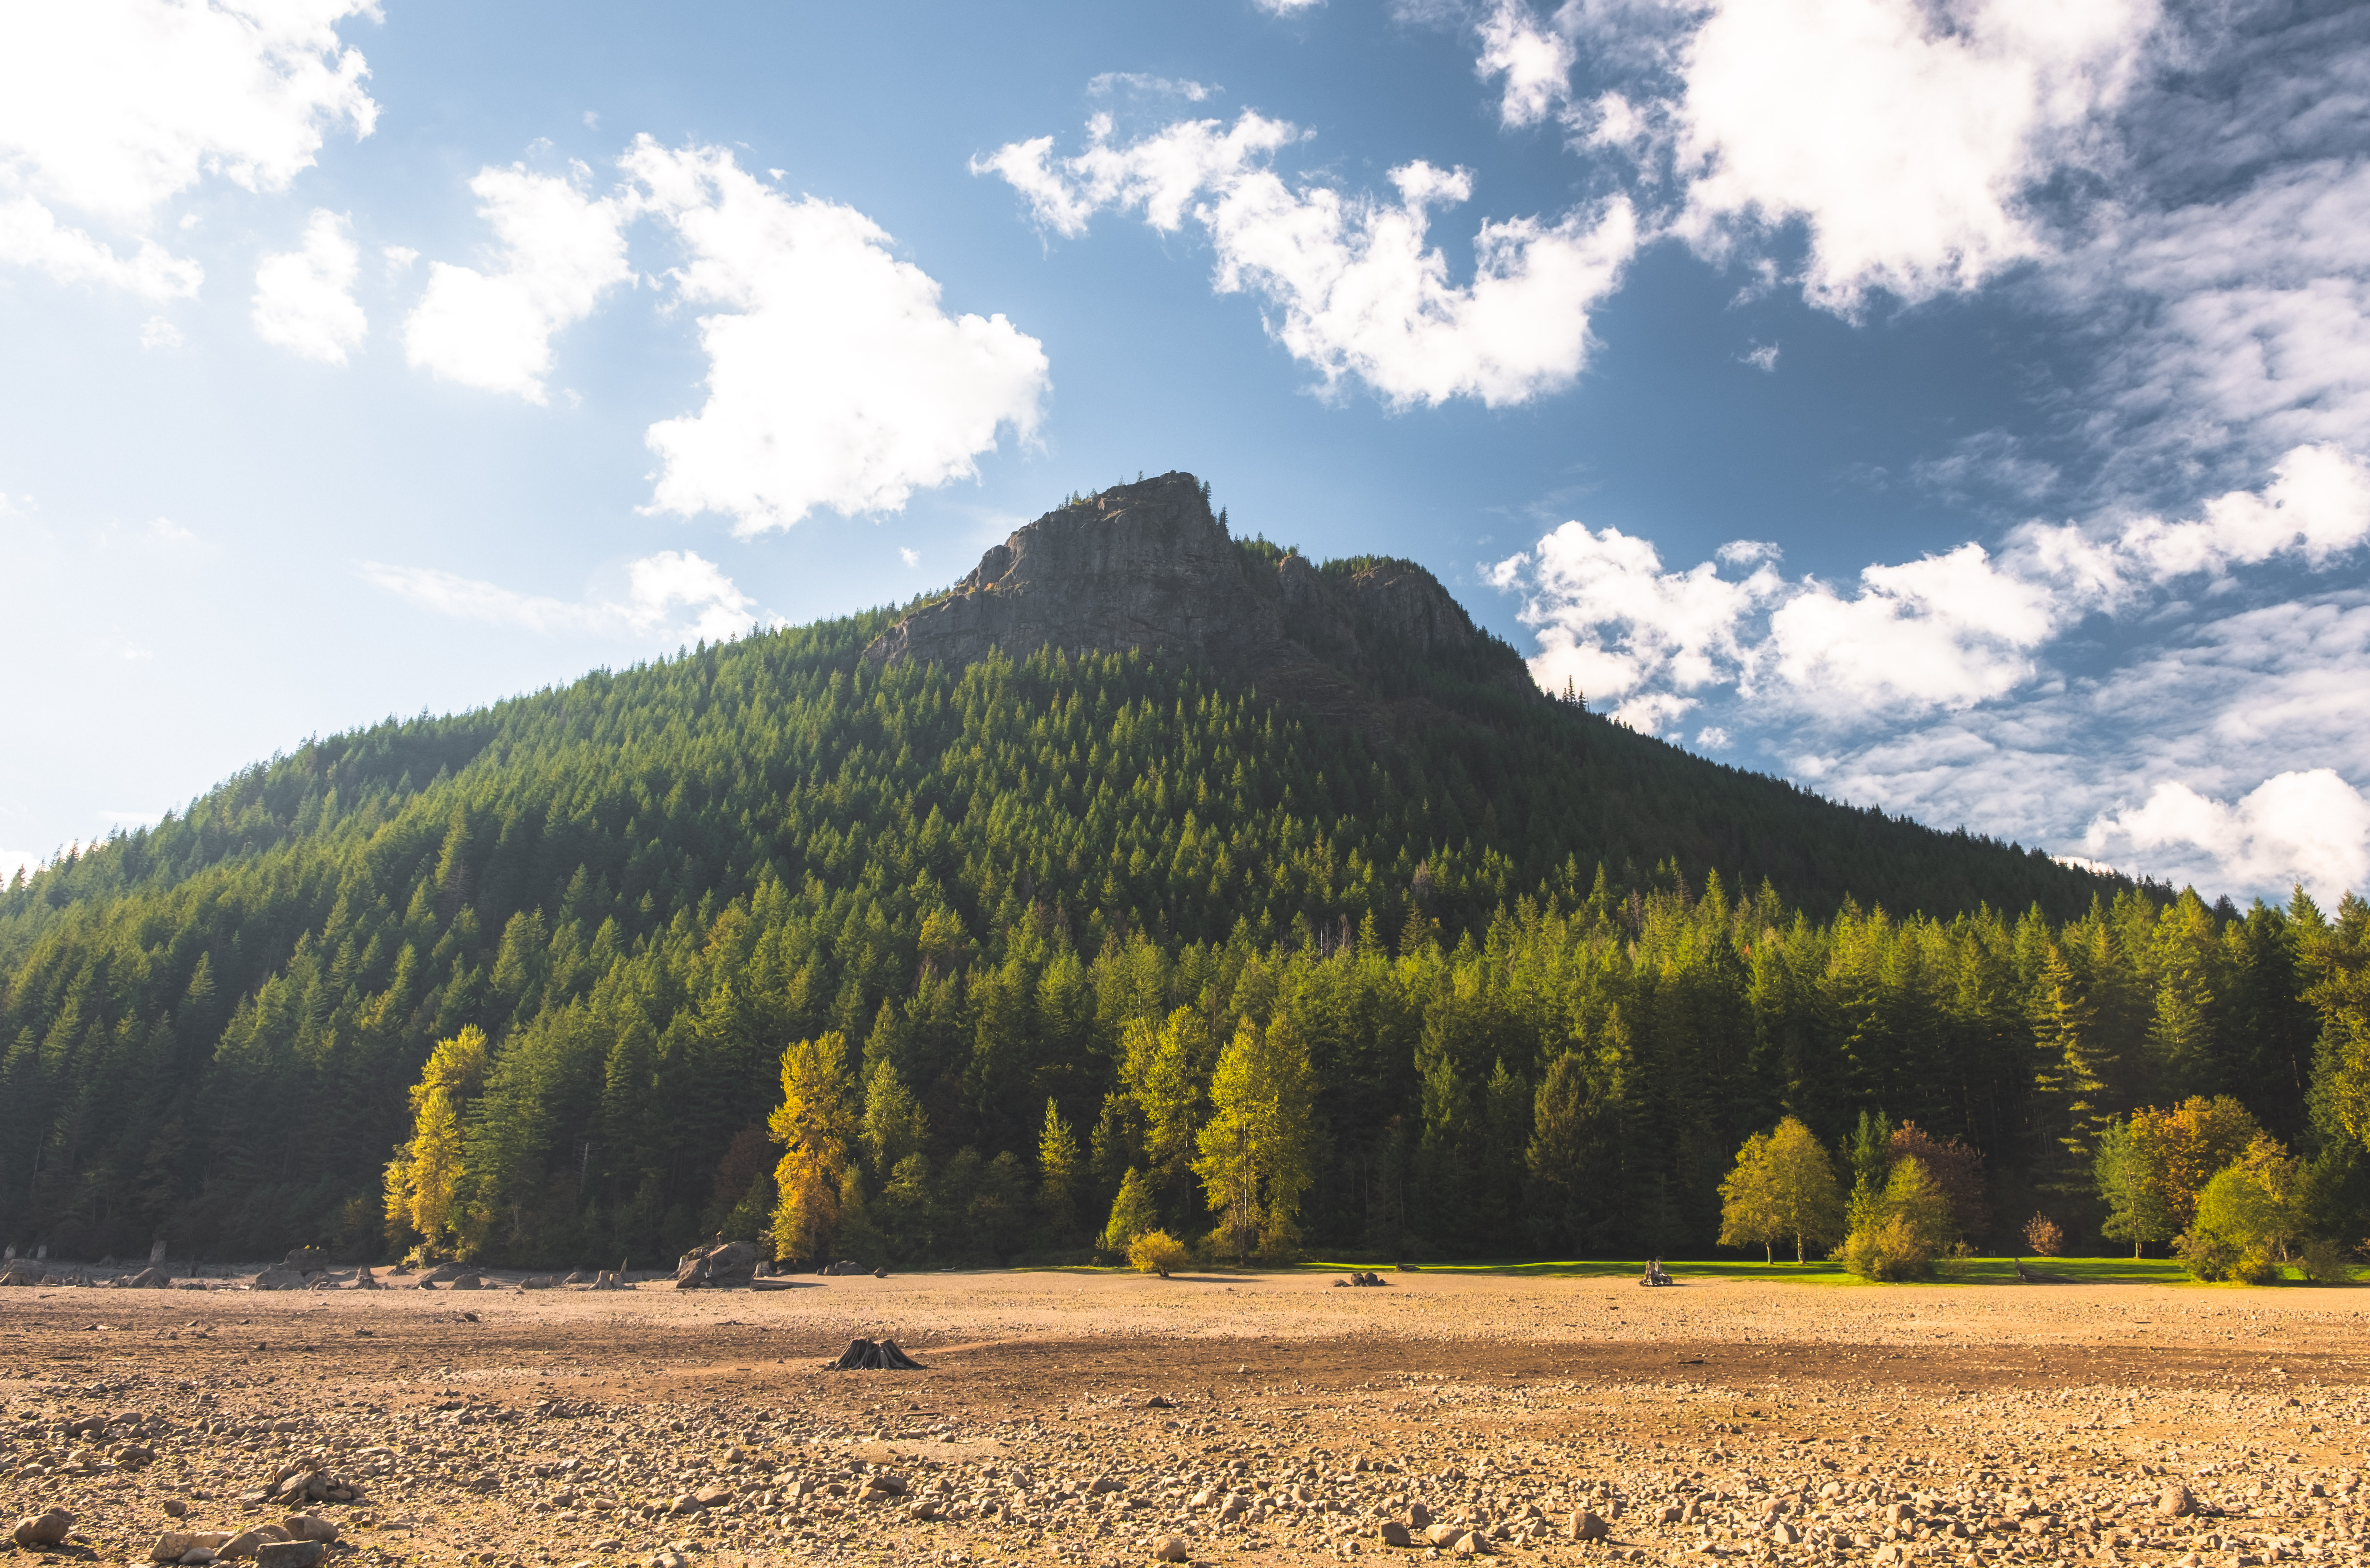 With stunning views of Mt. Si, Mt. Washington, Rattlesnake Lake, and Chest Morse Lake - Rattlesnake Ledge is quite possibly one of the best hikes near Seattle for its easy accessibility and moderate difficulty. Just under an hour from downtown Seattle, the hike is roughly{ }4{ }miles roundtrip, with a 1160 ft elevation gain. Come early to enjoy breathtaking views of light rays streaking through the trees as you hike up, or come later in the day to enjoy a wonderful sunset at the peak! (Image: Ryan{ }McBoyle{ }/ Seattle Refined)